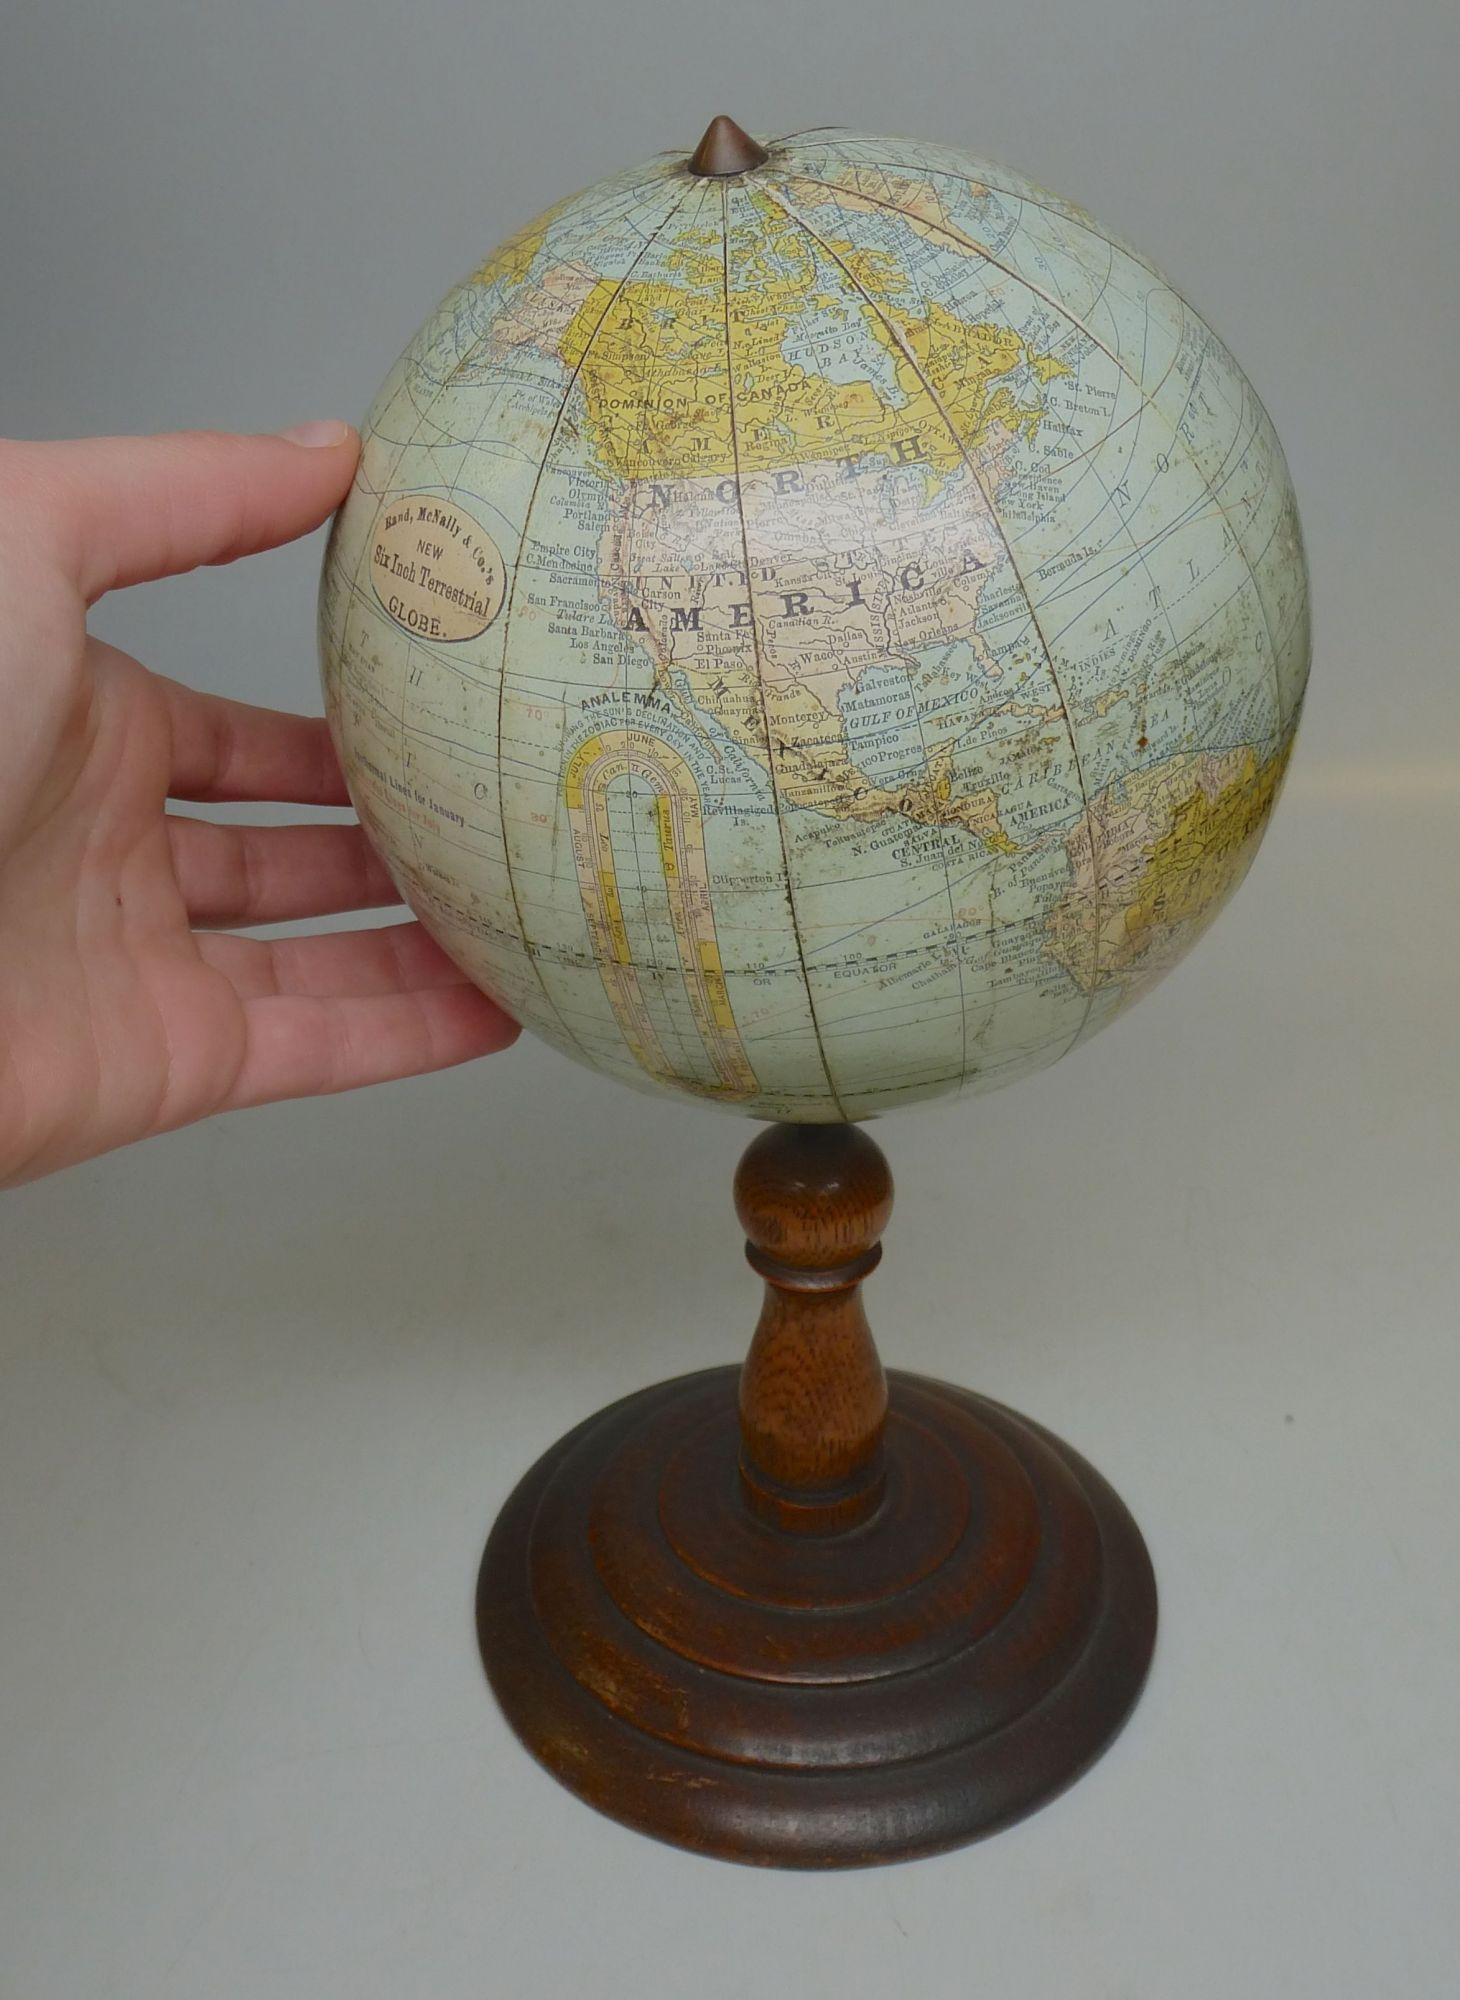 rand mcnally globe dating Beautiful world globe dating around  art deco rand mcnally terrestrial art globe comes with atlas of the world standing on  requiers restoration dimensions.